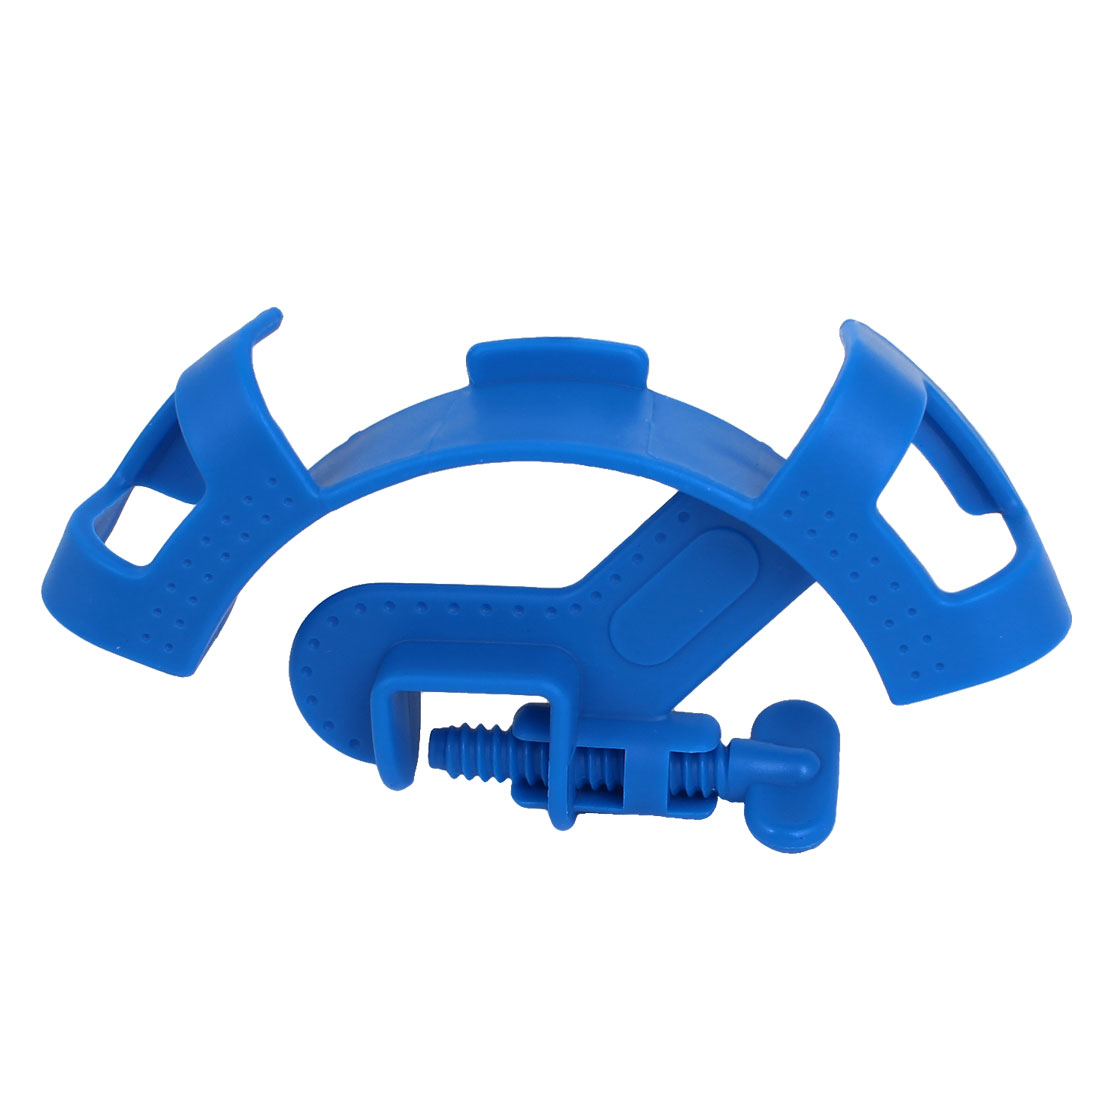 Mount Pipe Filtration Hose Holder Filter Tube Fixture Blue for Aquarium Fish Tank